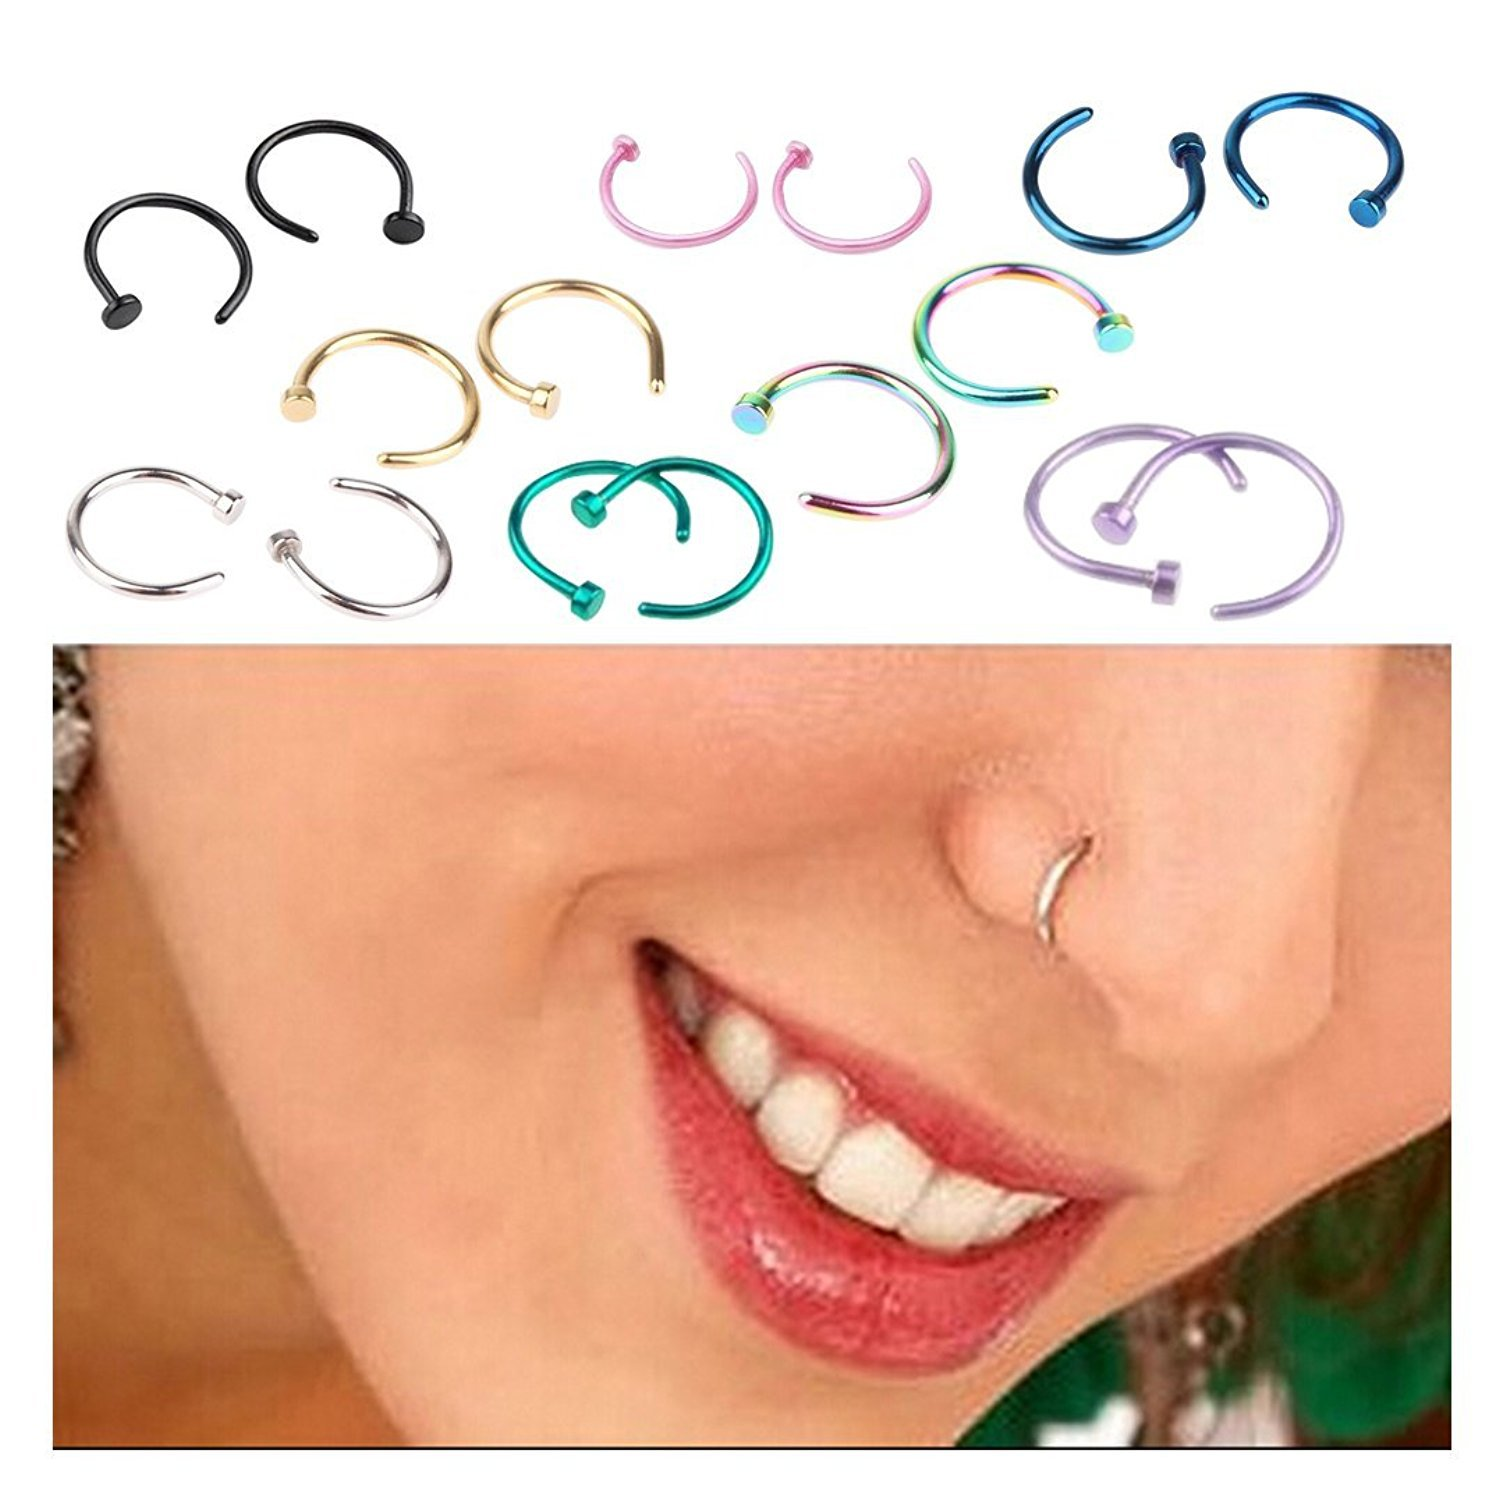 Stainless Steel Nose Ring (Color and Size Varies)